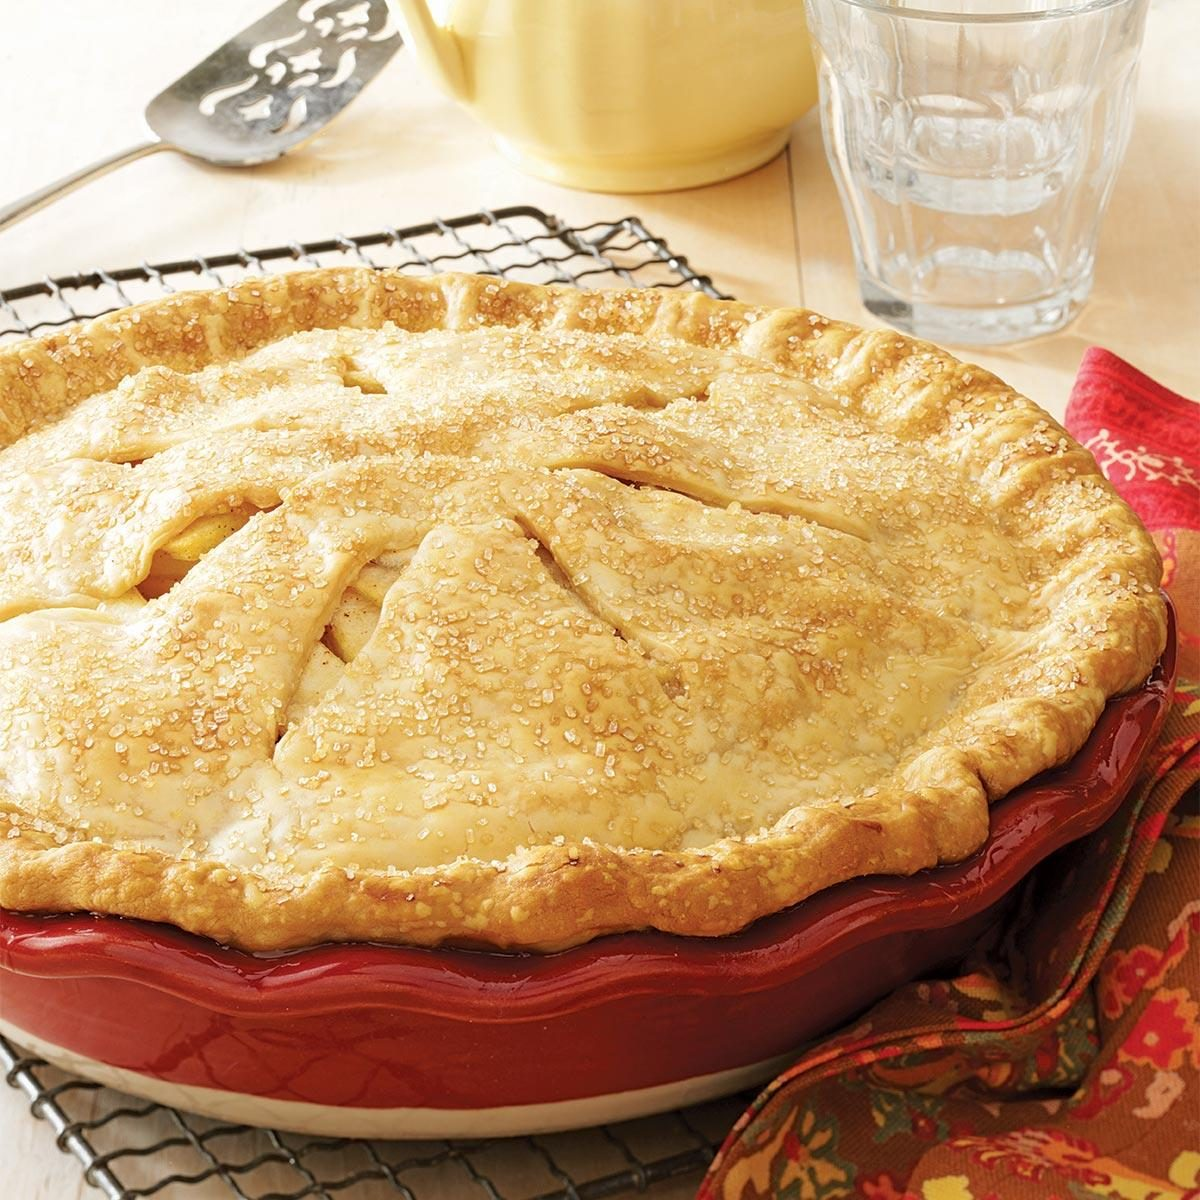 Apple pear pie recipe taste of home for Apple pear recipes easy